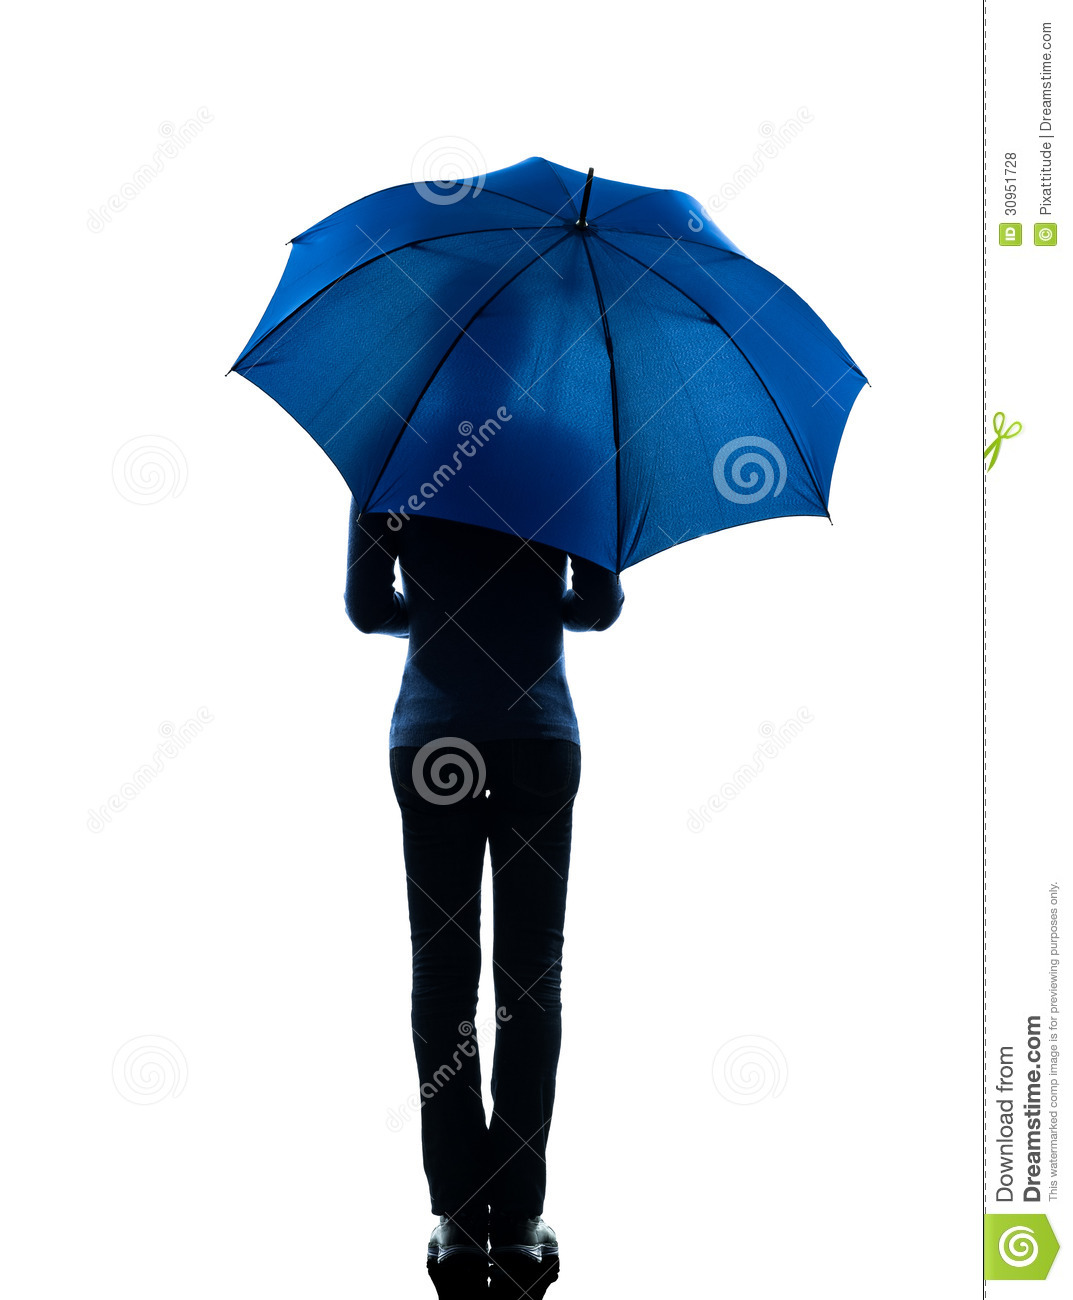 Woman Rear View Holding Umbrella Silhouette Stock Photo Image Of Studio Silhouette 30951728